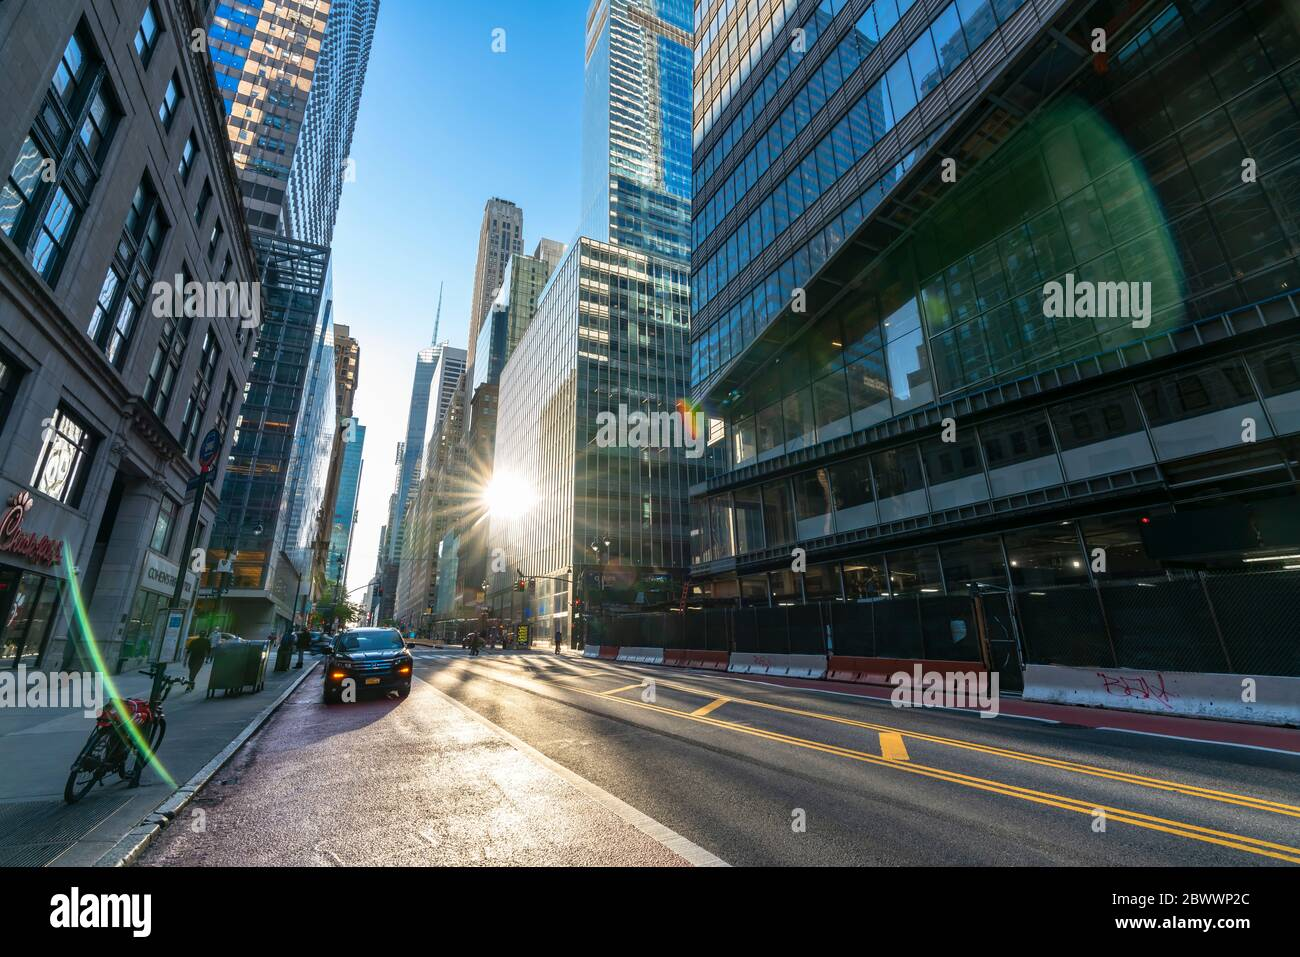 People and traffic disappears from Midtown 42nd Street for impact of COVID-19 at New York NY USA on Memorial Day May 25 2020. Stock Photo